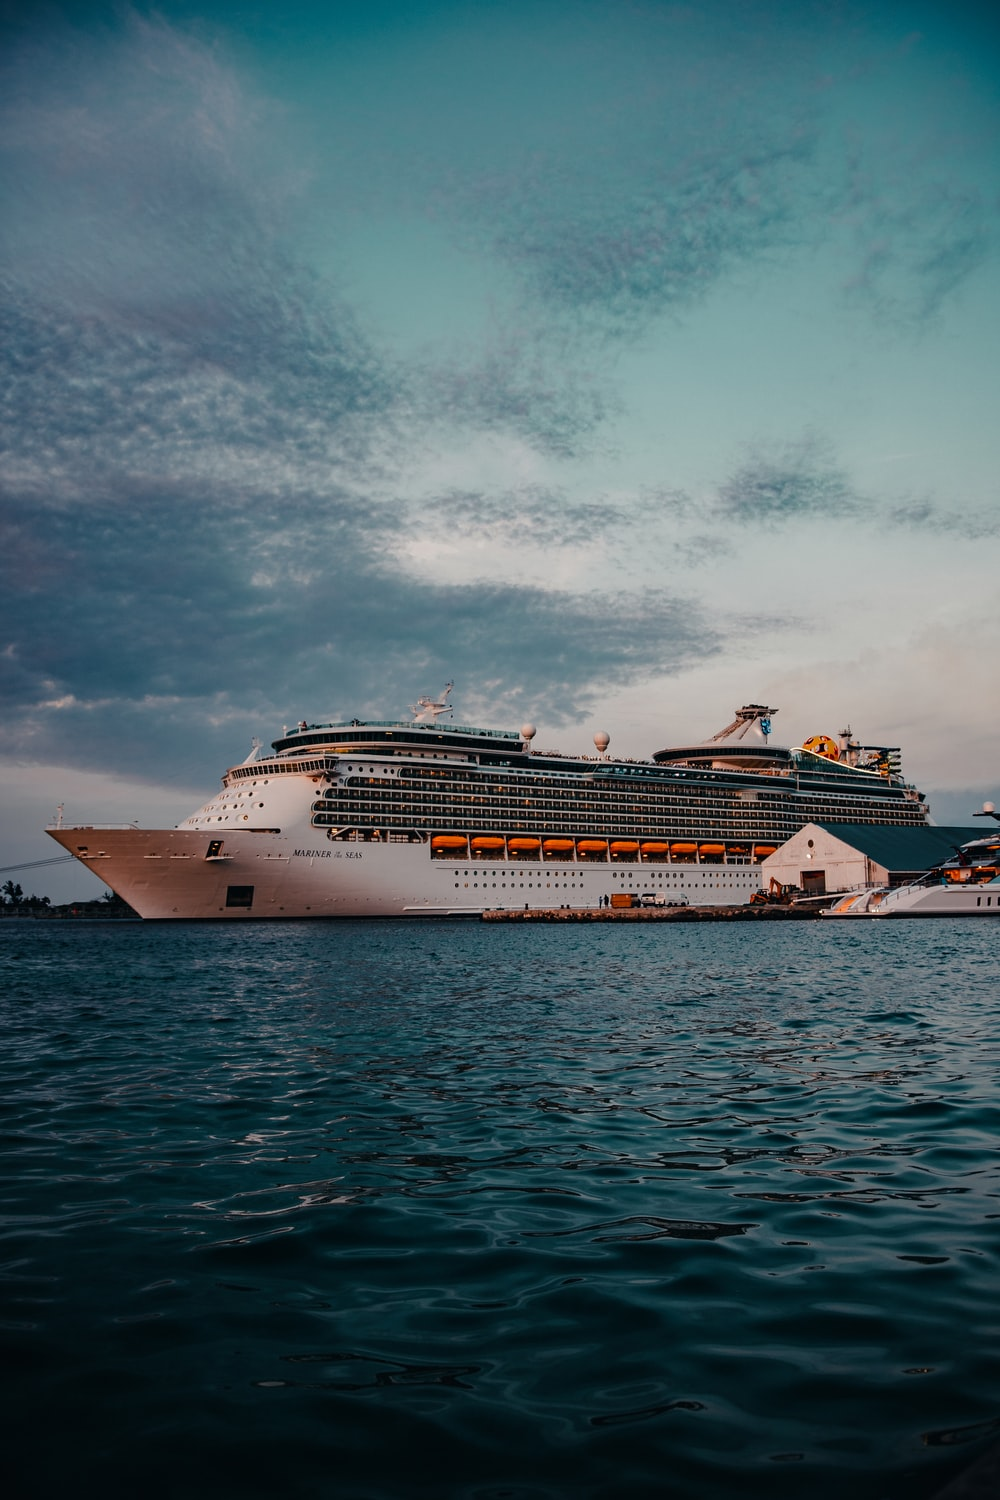 white cruise ship on sea under white clouds and blue sky during daytime